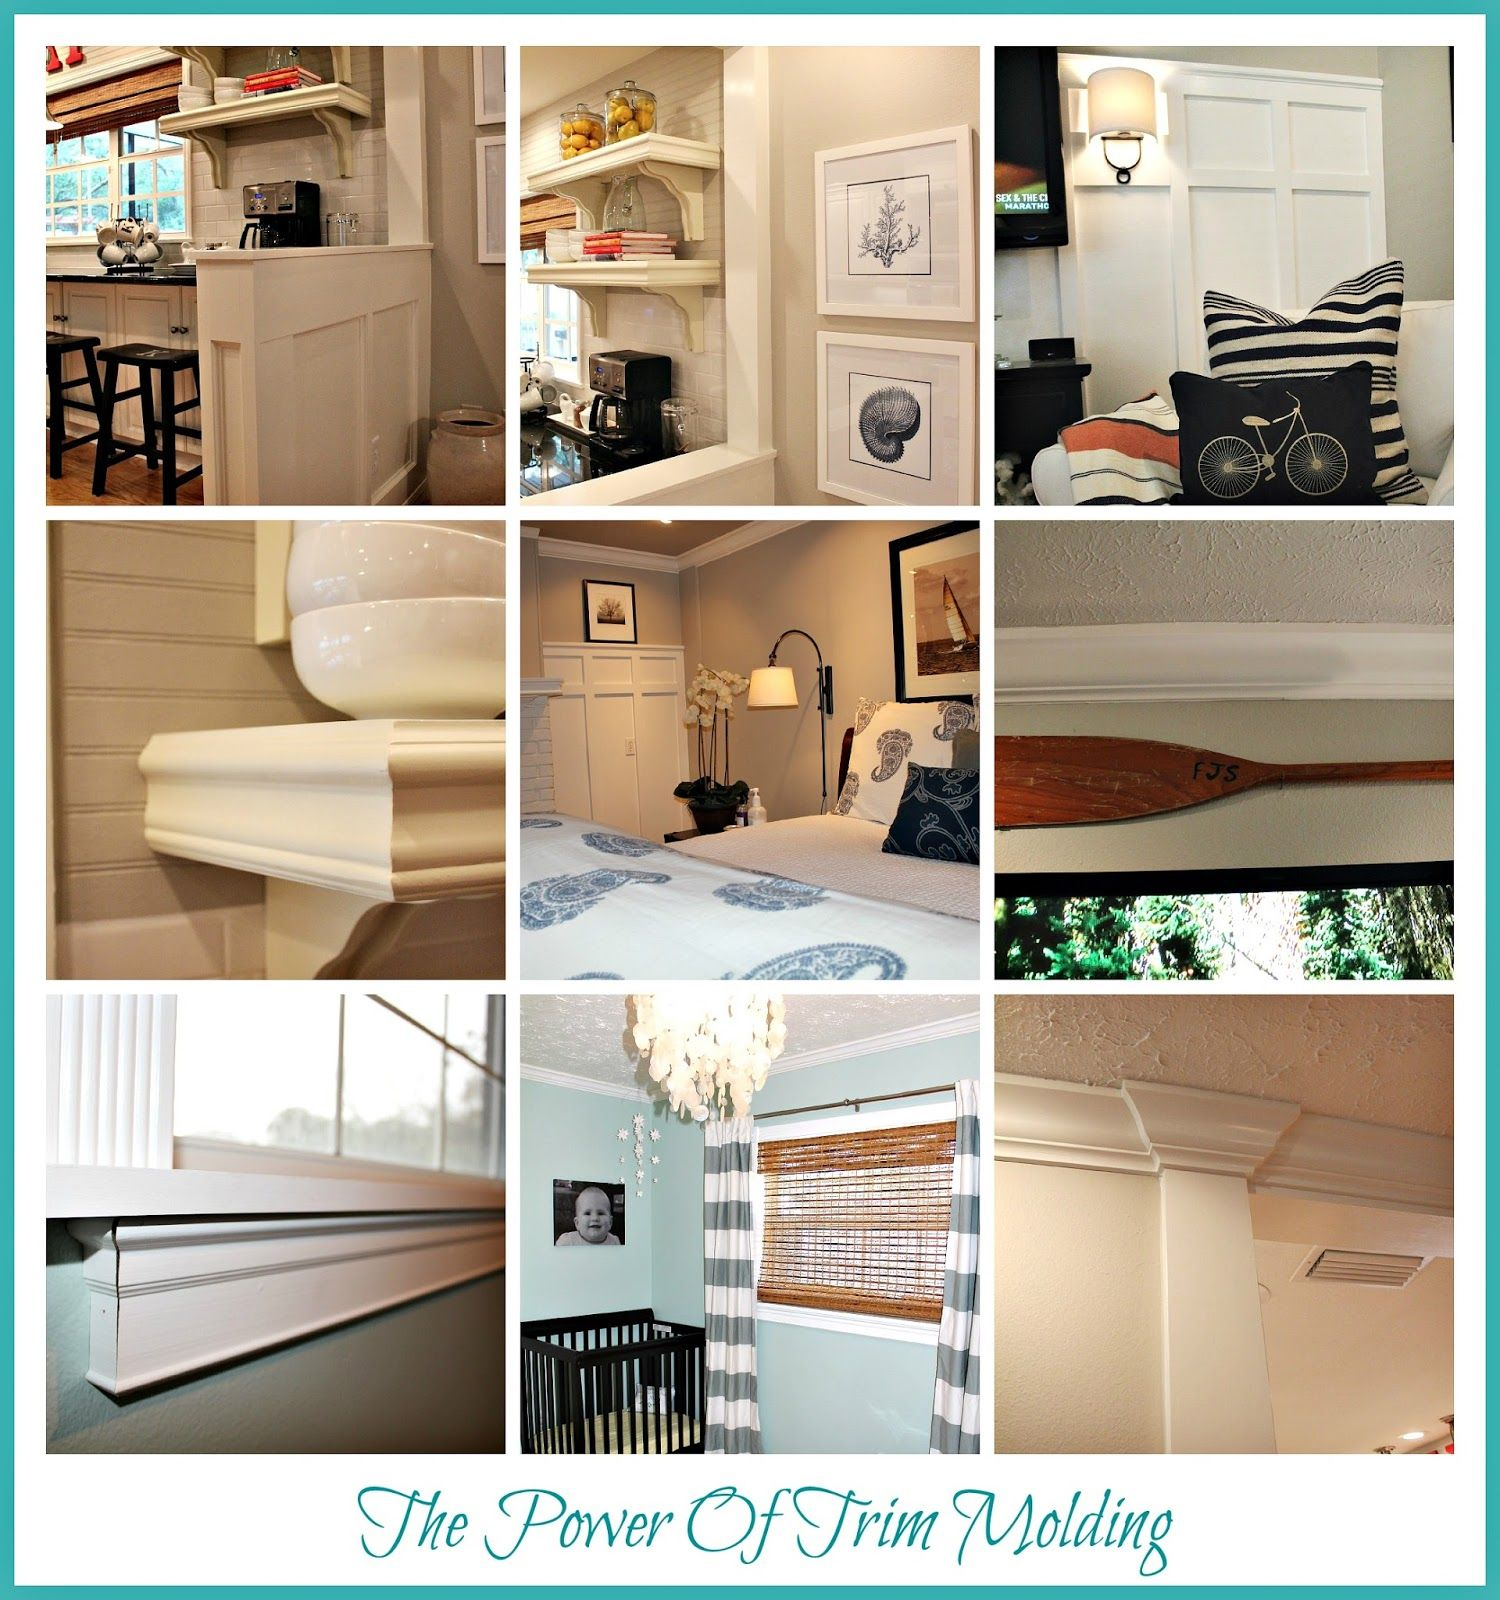 An Easy Diy For A Boring Apartment: The Daily Nest: The Power Of Trim Molding!